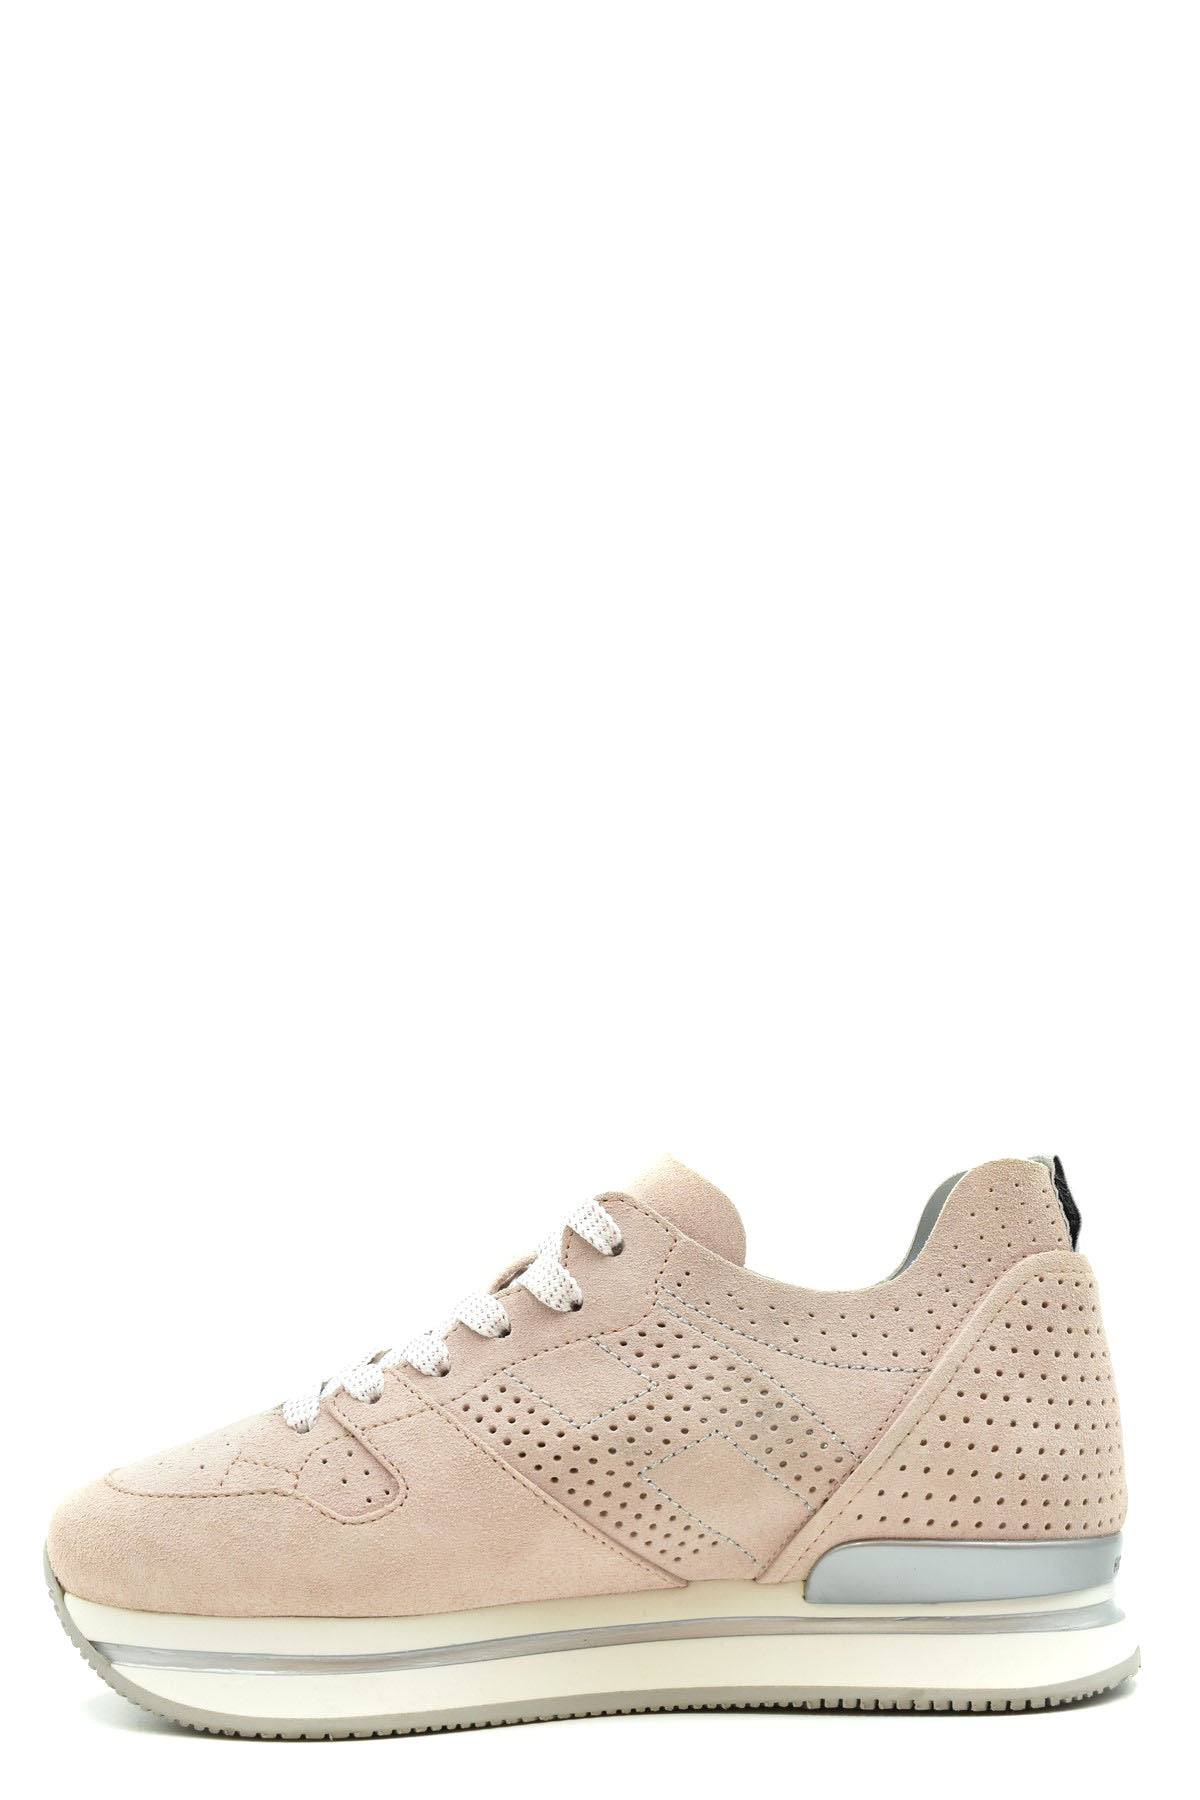 Shoes Hogan-Sports & Entertainment - Sneakers-Product Details Manufacturer Part Number: Hxw2220Bf20Ffy0Zb8Year: 2020Composition: Suede 100%Size: EuGender: WomanMade In: ItalySeason: Spring / SummerMain Color: PinkTerms: New With LabelType Of Accessory: Shoes-Keyomi-Sook